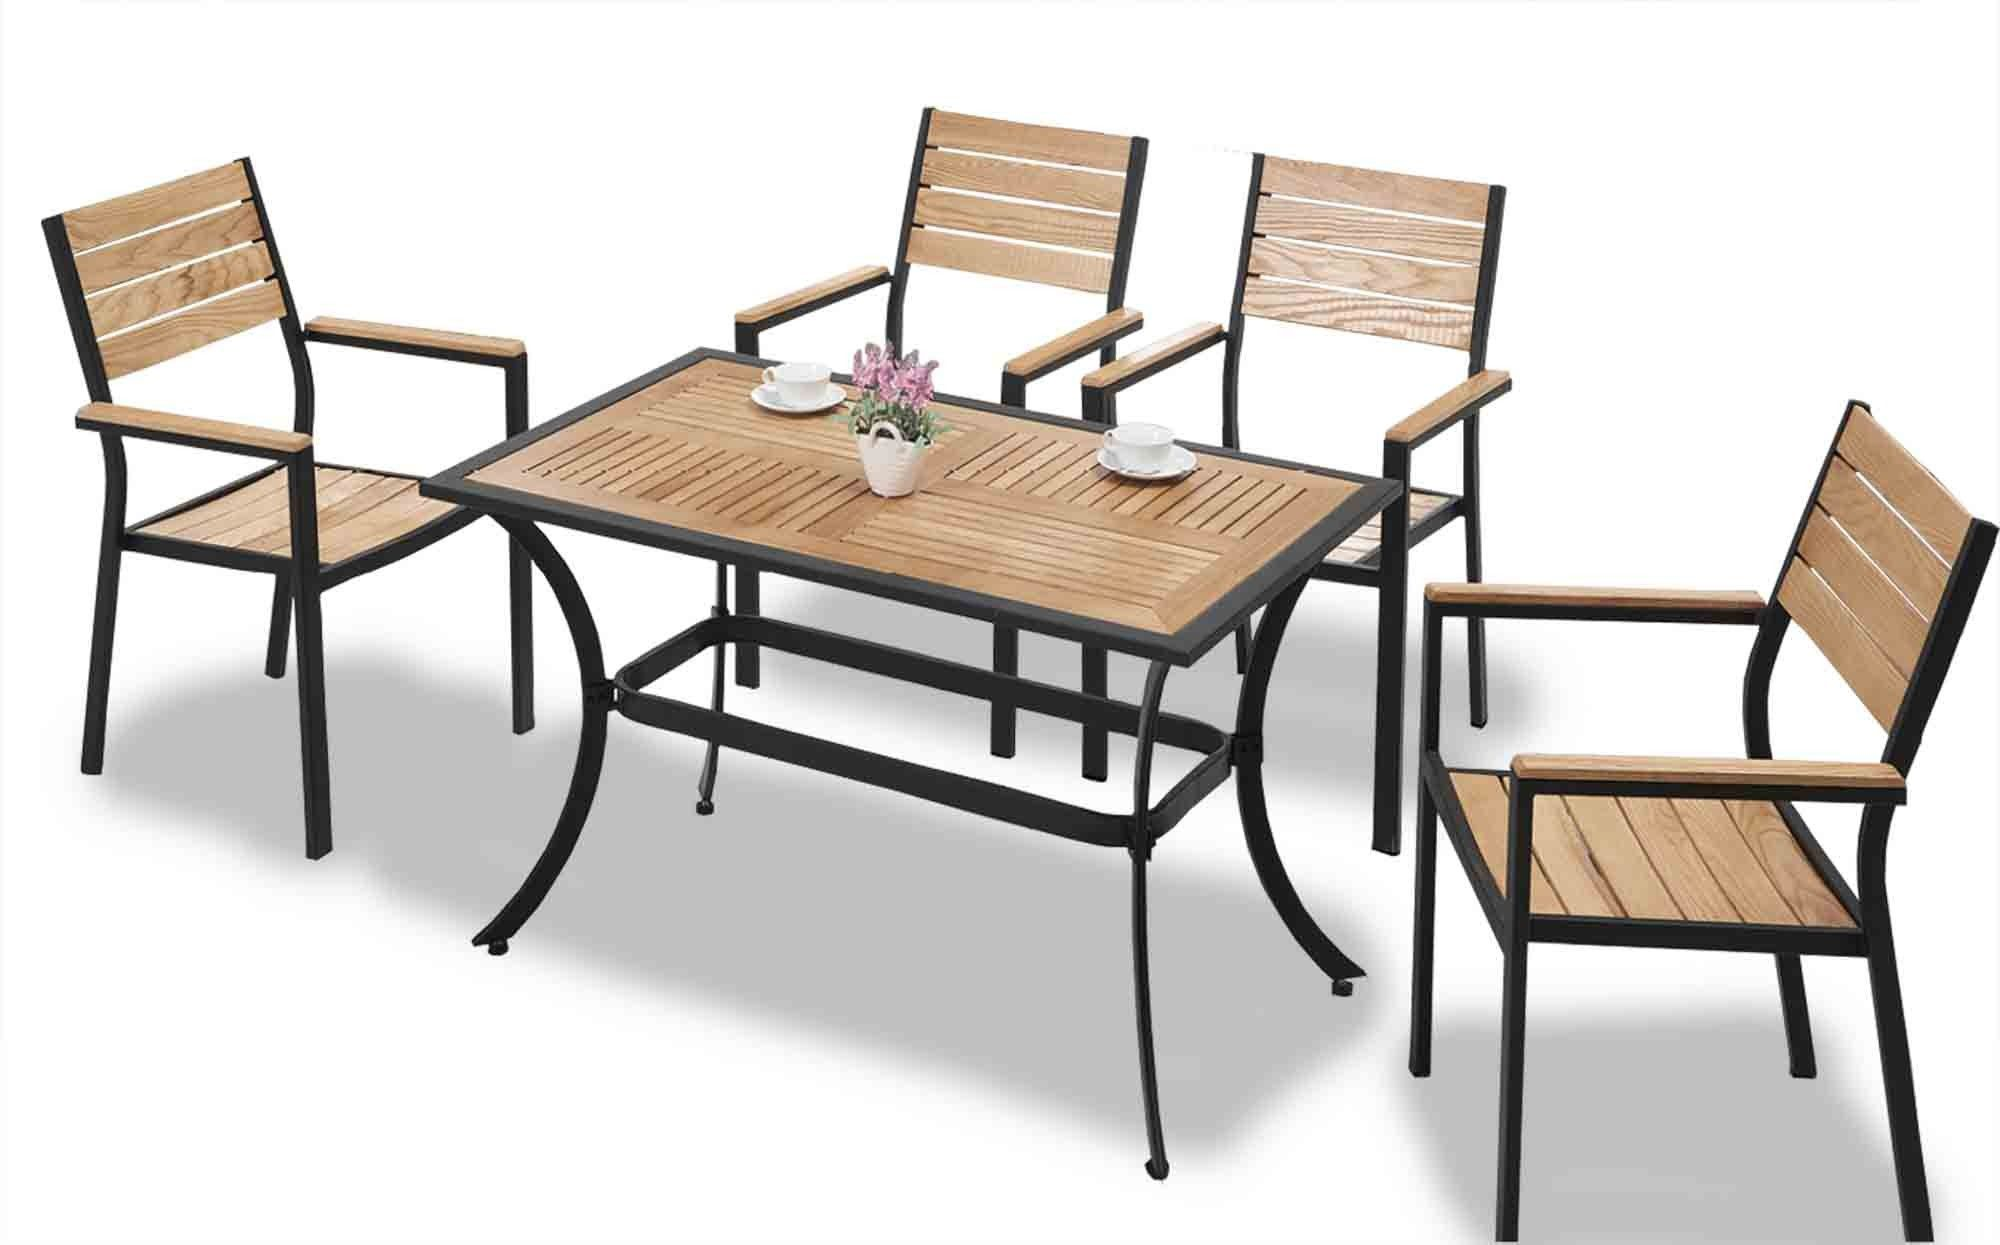 Miros Outdoor Set Dimension Table - Height: 6cm - Width: 6cm